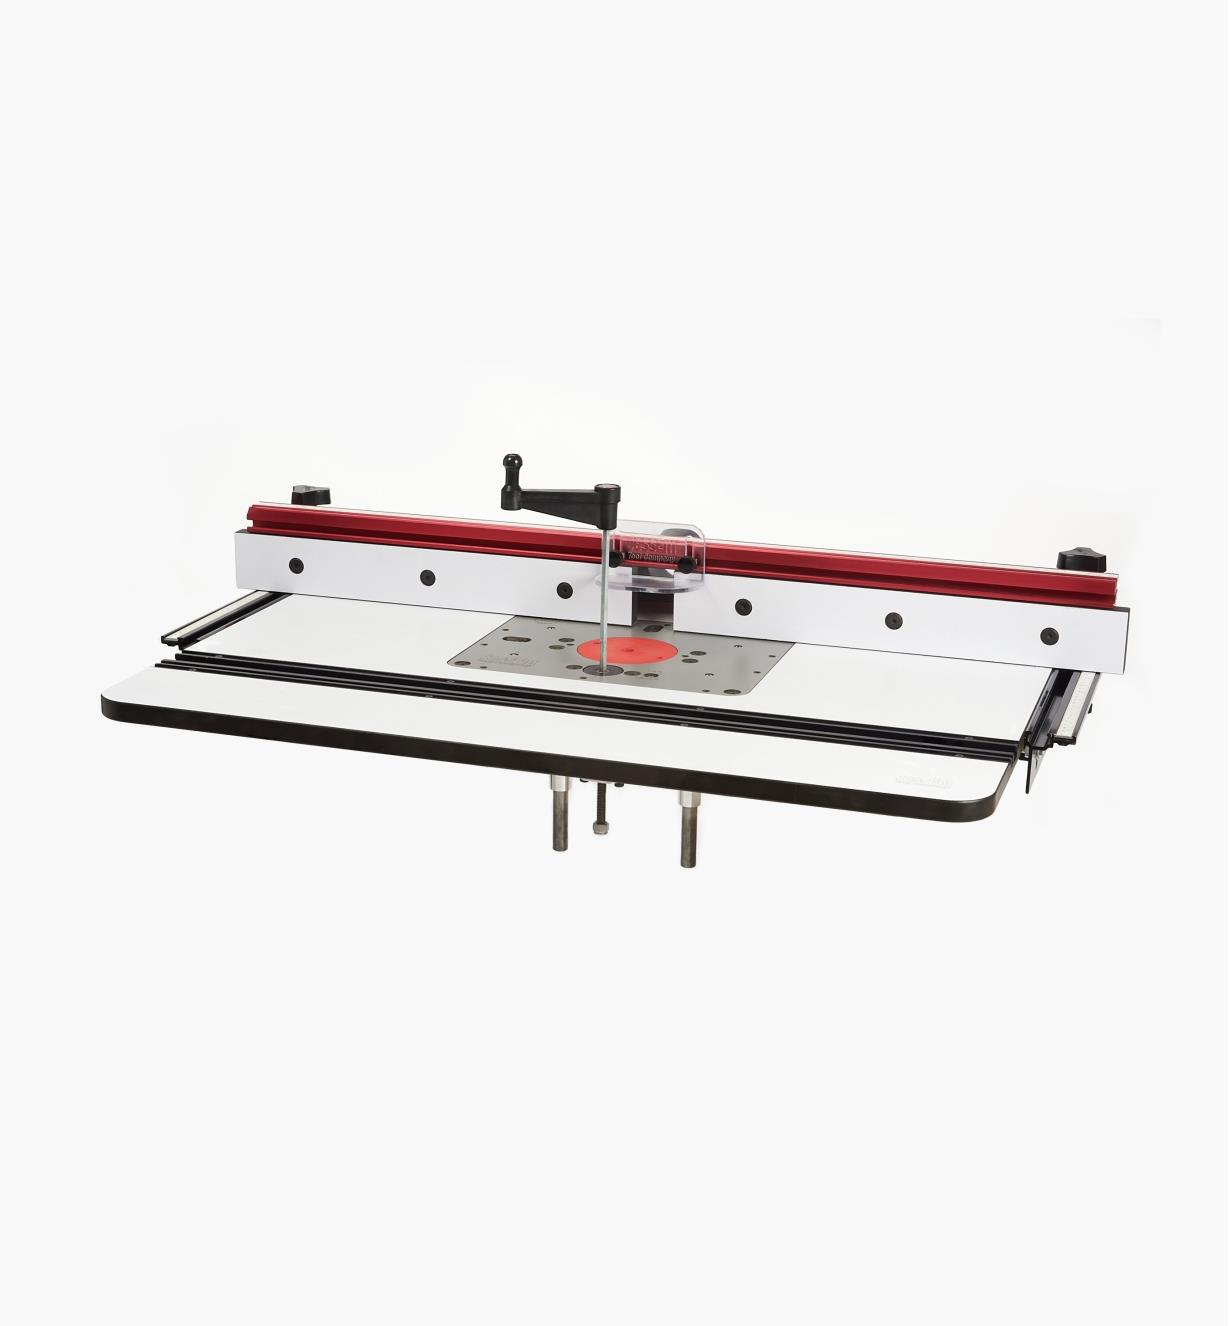 86N4212 - JessEm Rout-R-Lift II for Hitachi M12VC + Table Top & Fence